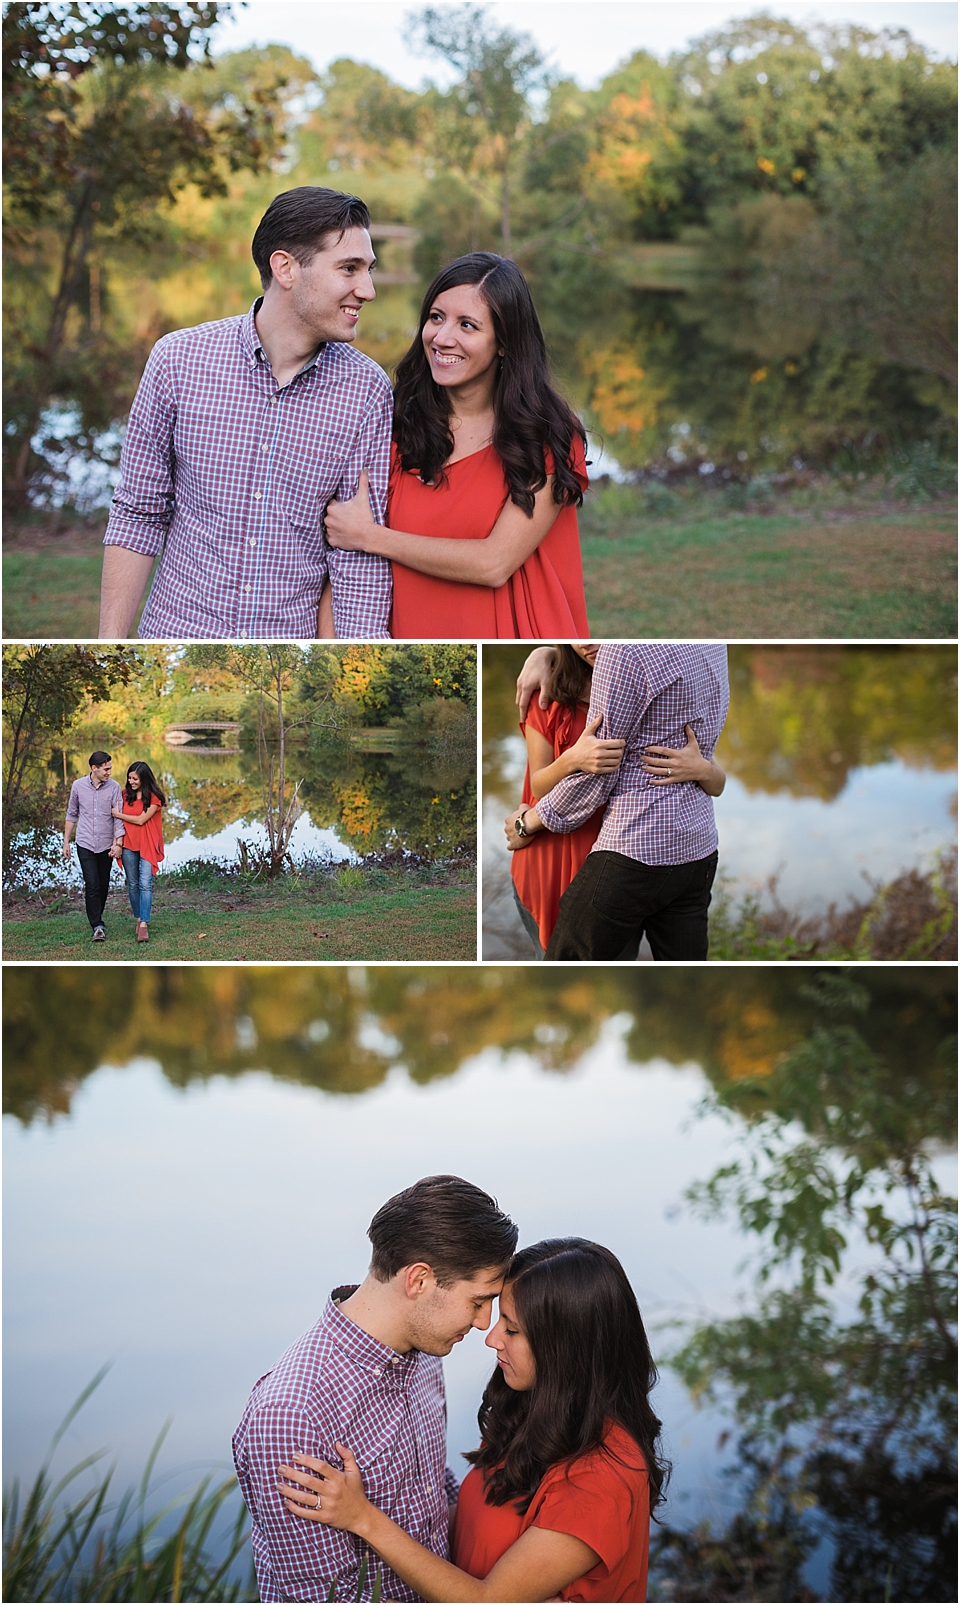 Alison & Arno TCNJ Engagement Session - Kamp Weddings_0014.jpg